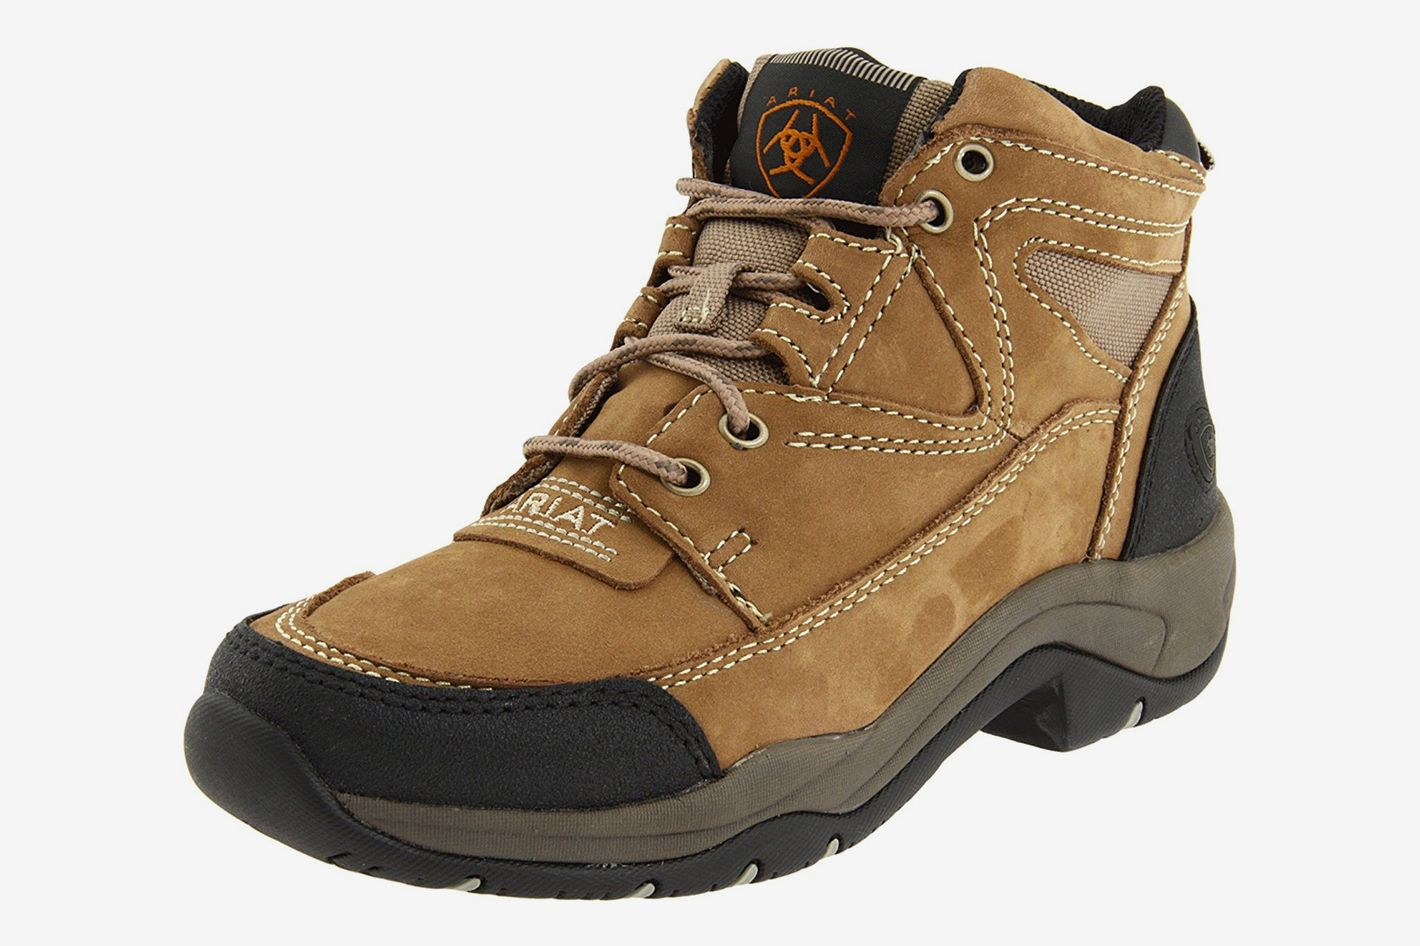 bf60c8679e1d ariat Best women s hiking boot for wide feet